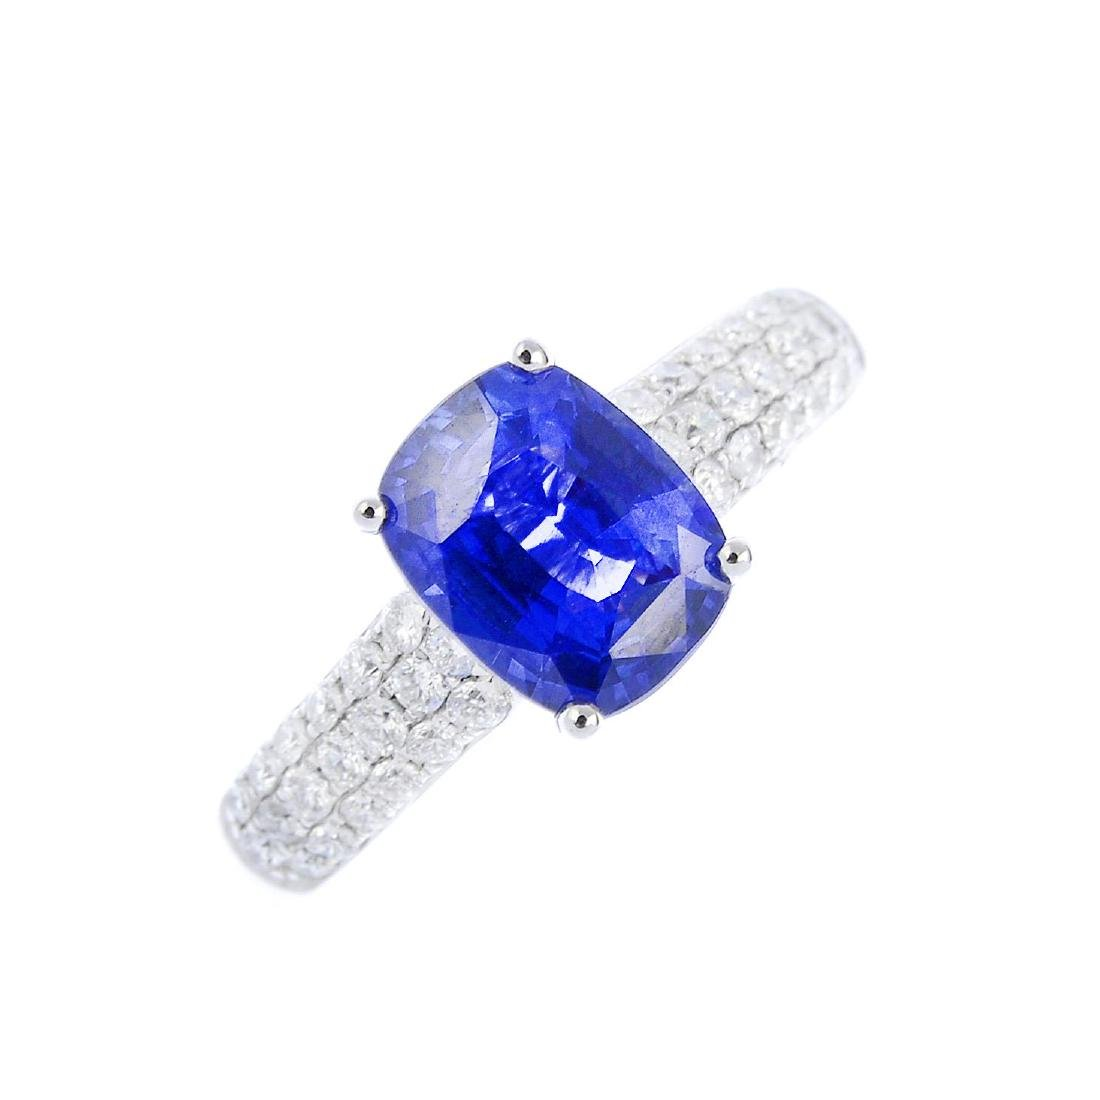 A sapphire and diamond single-stone ring. The